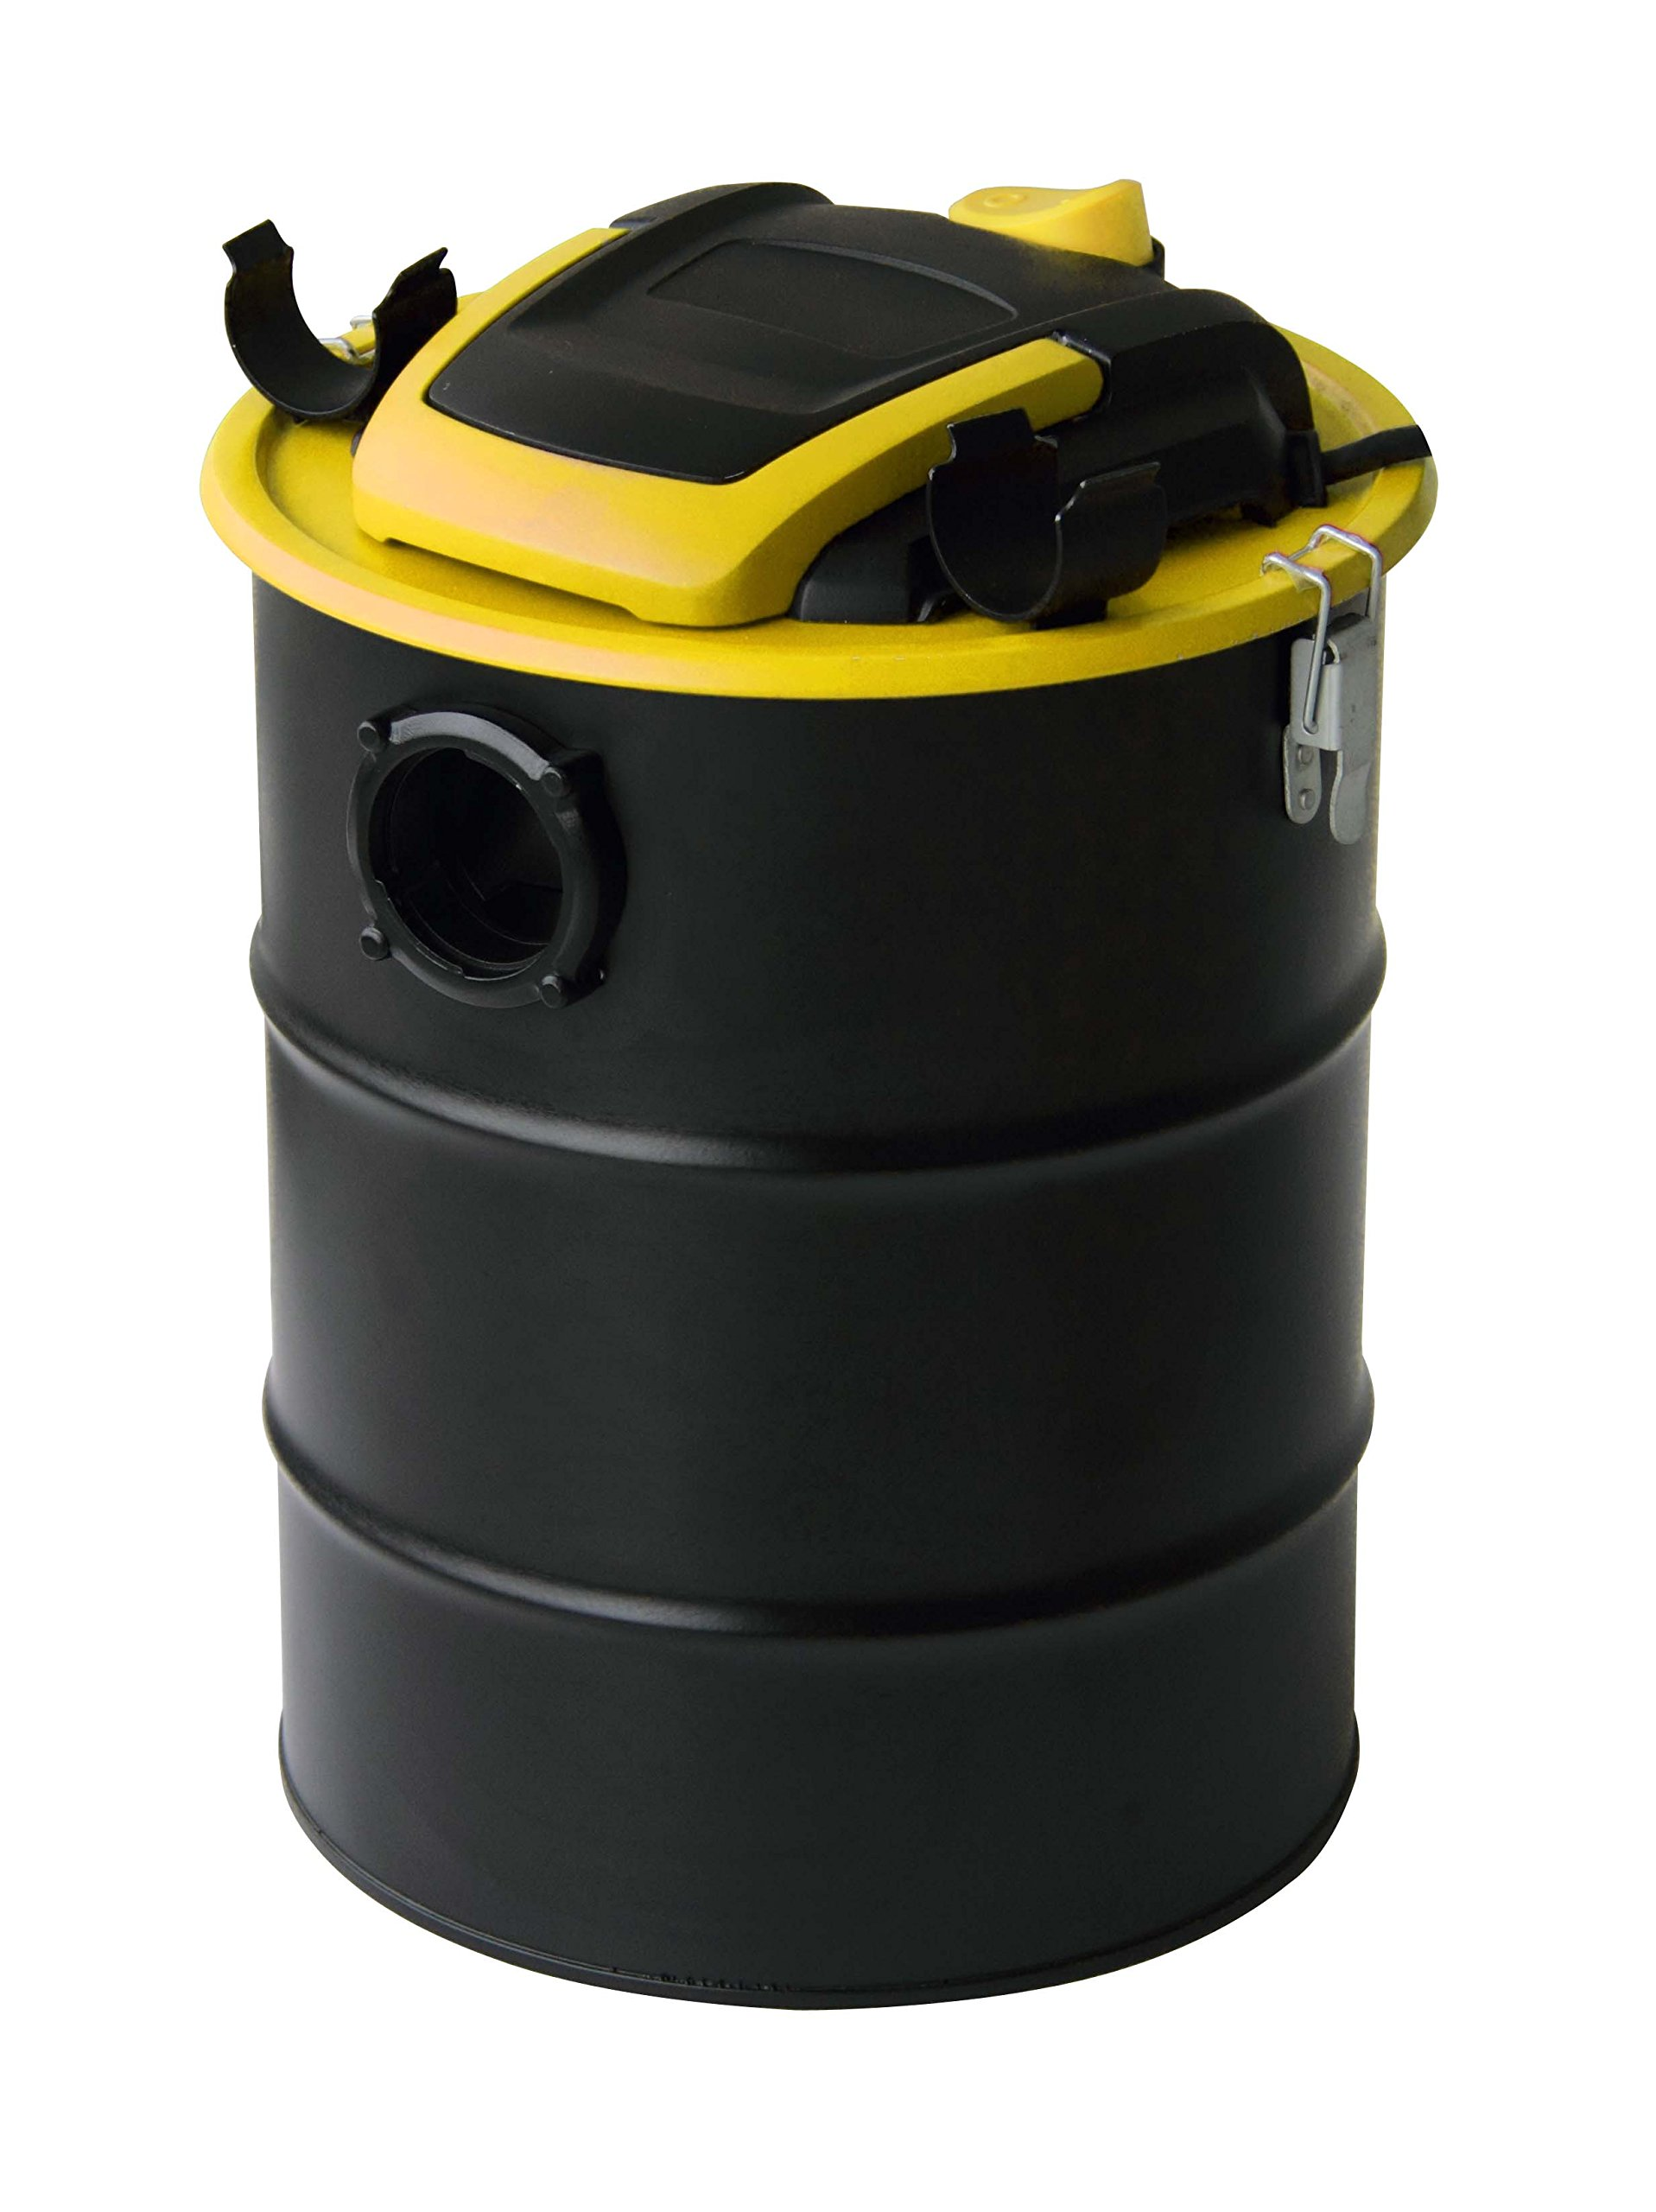 Stanley Ash Vac, 4 Gallon, 4 Horsepower by Stanley (Image #1)